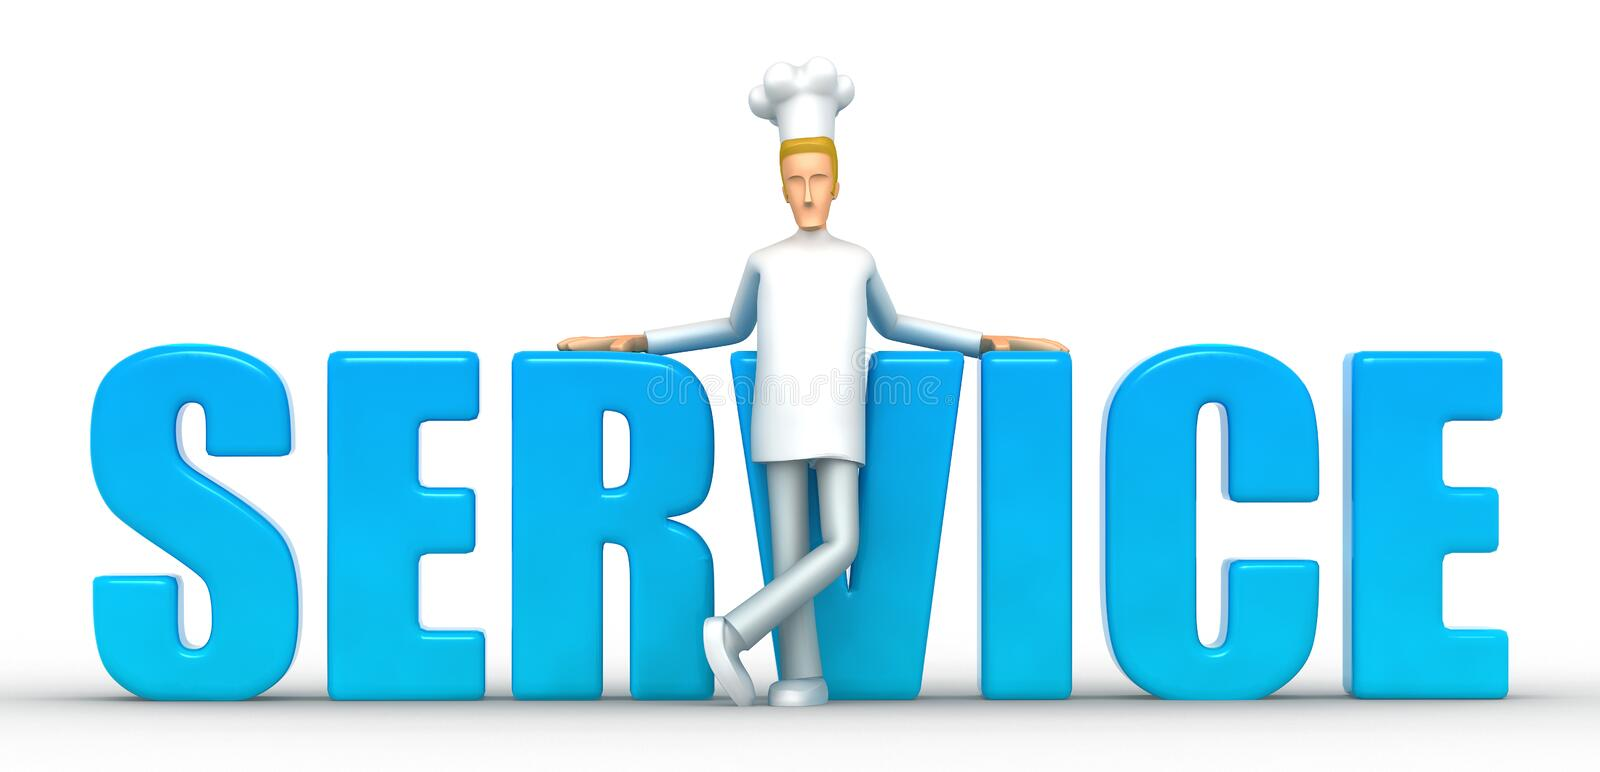 Service. Illustration of an abstract character on a white background for use in presentations, etc